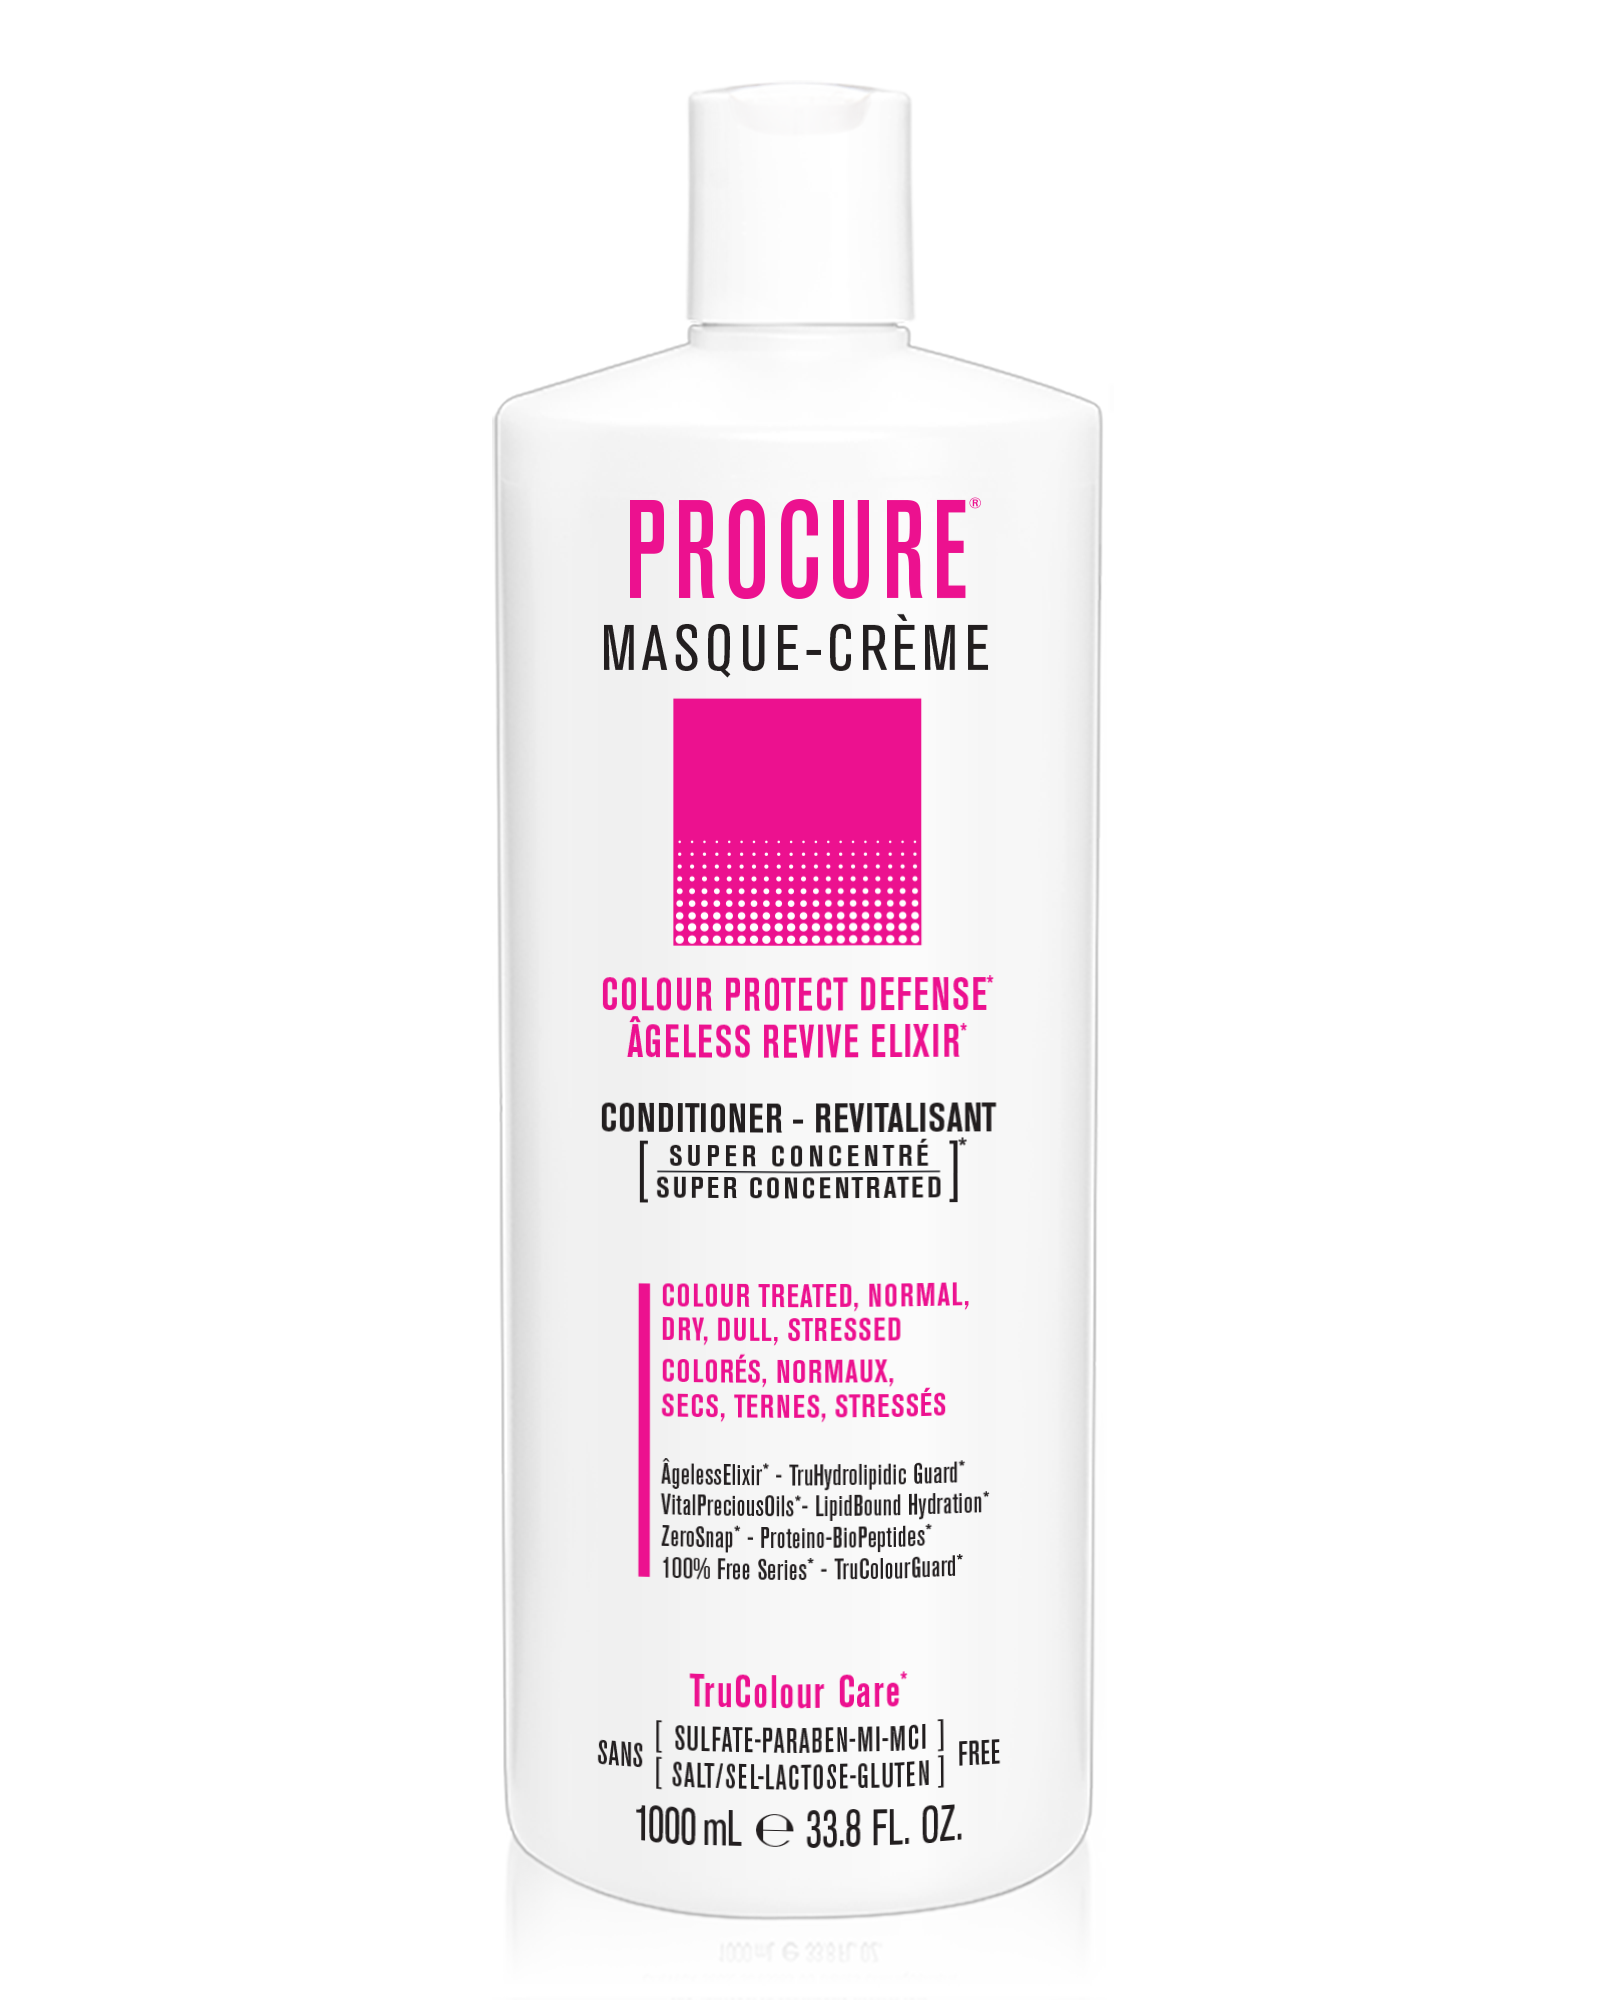 PROCURE Colour Protect Defense Masque-Creme (conditioner) - SNOBGIRLS Canada